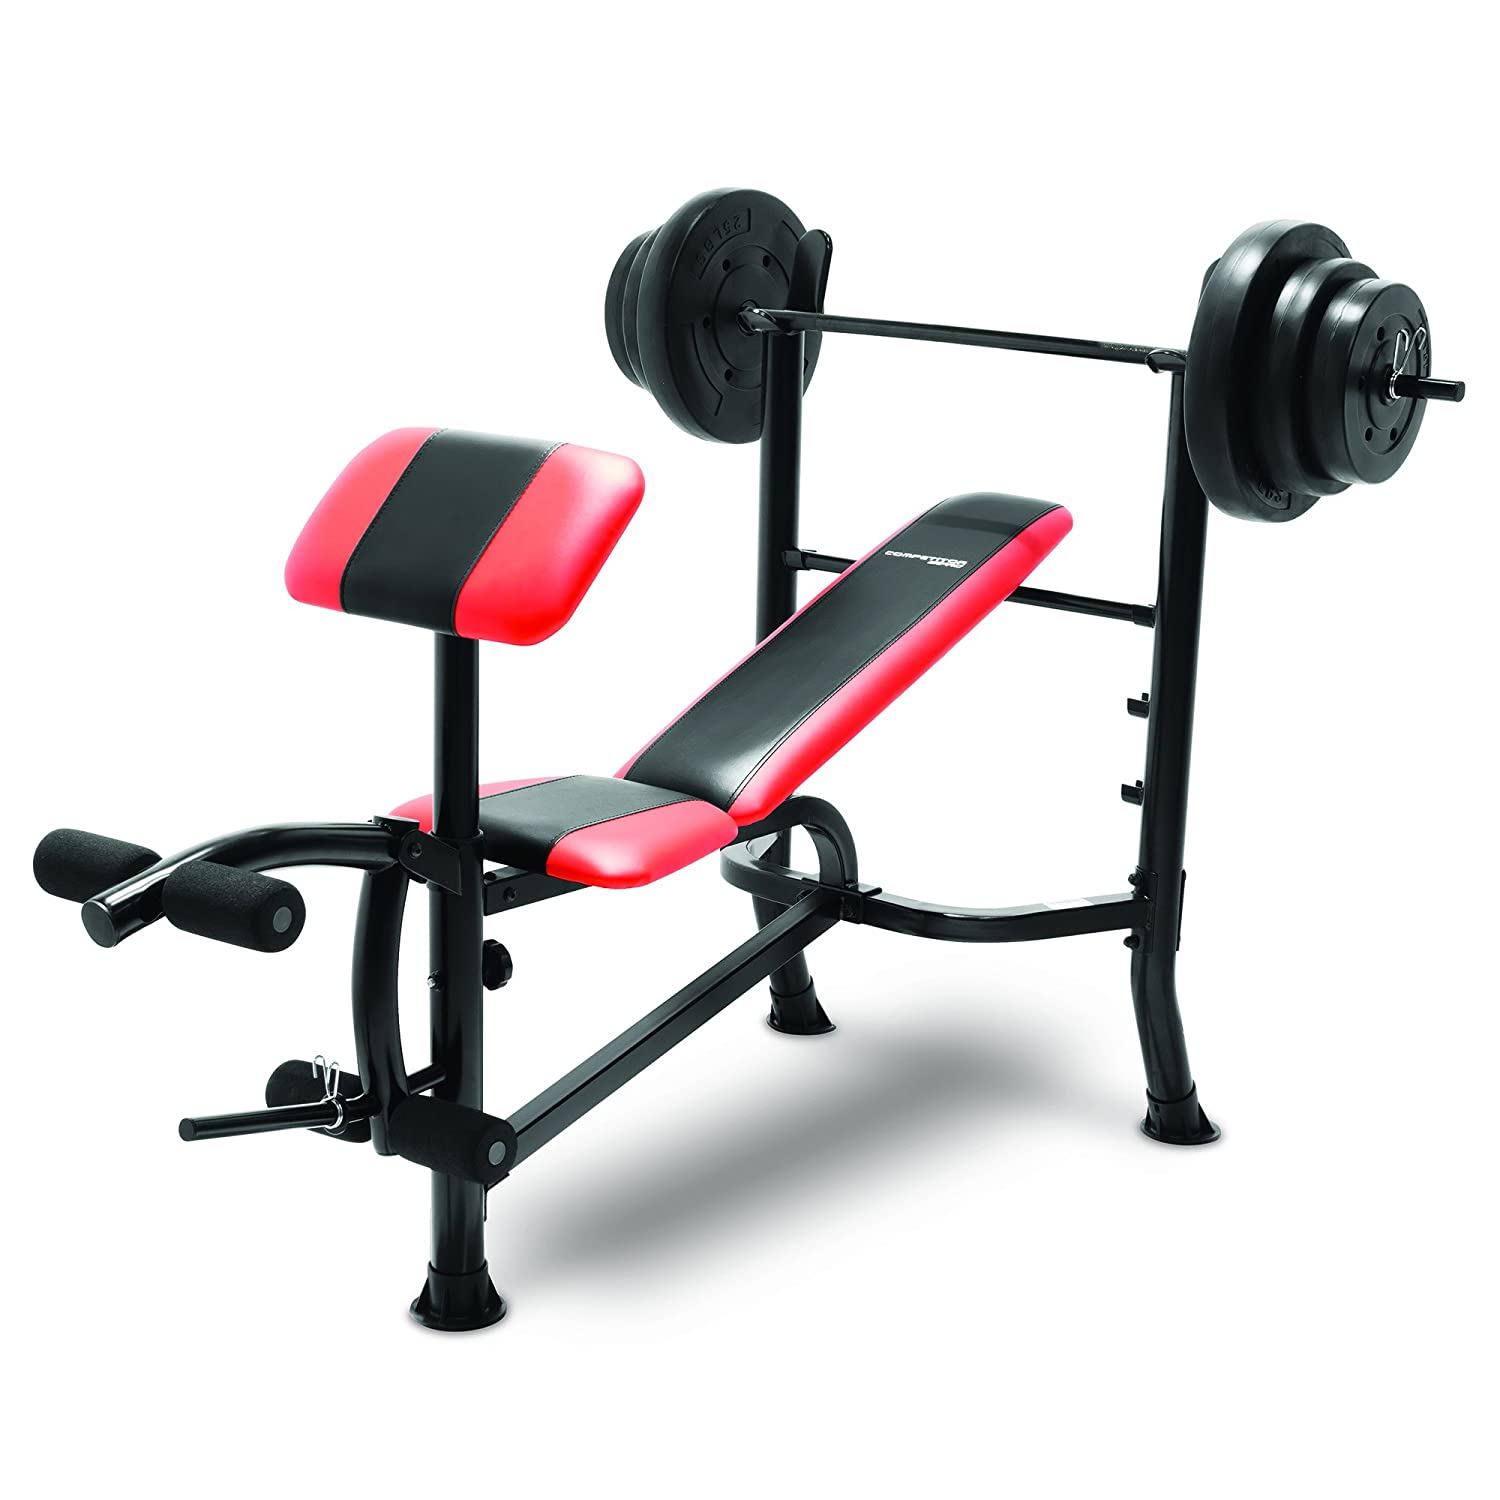 Amazon.com : Marcy Competitor Standard Bench with 100 lbs weight Set Combo  (black & Red) - CB-2982 : Sports & Outdoors